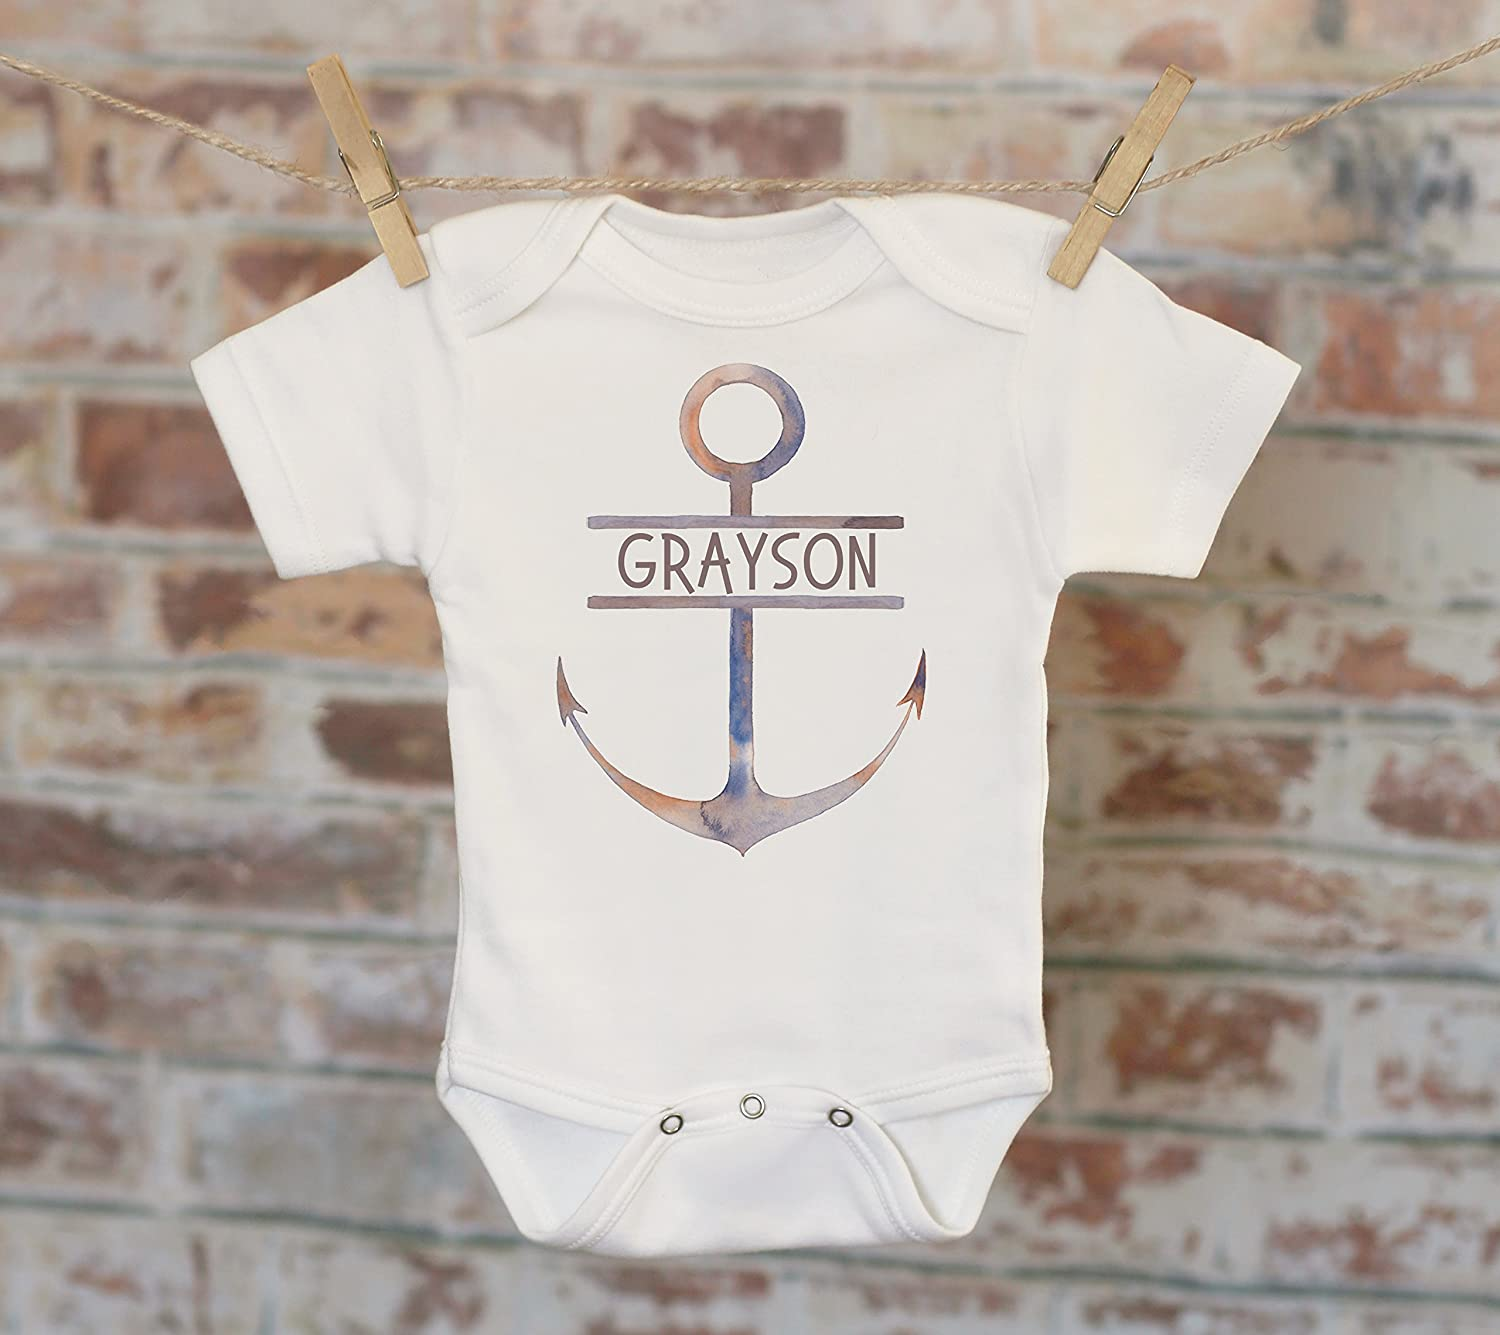 Nautical Boys Personalized Onesie®, Custom Baby Onesie, Cute Boy Outfit, Boy Name Onesie, Nautical Theme, Baby Shower Gift